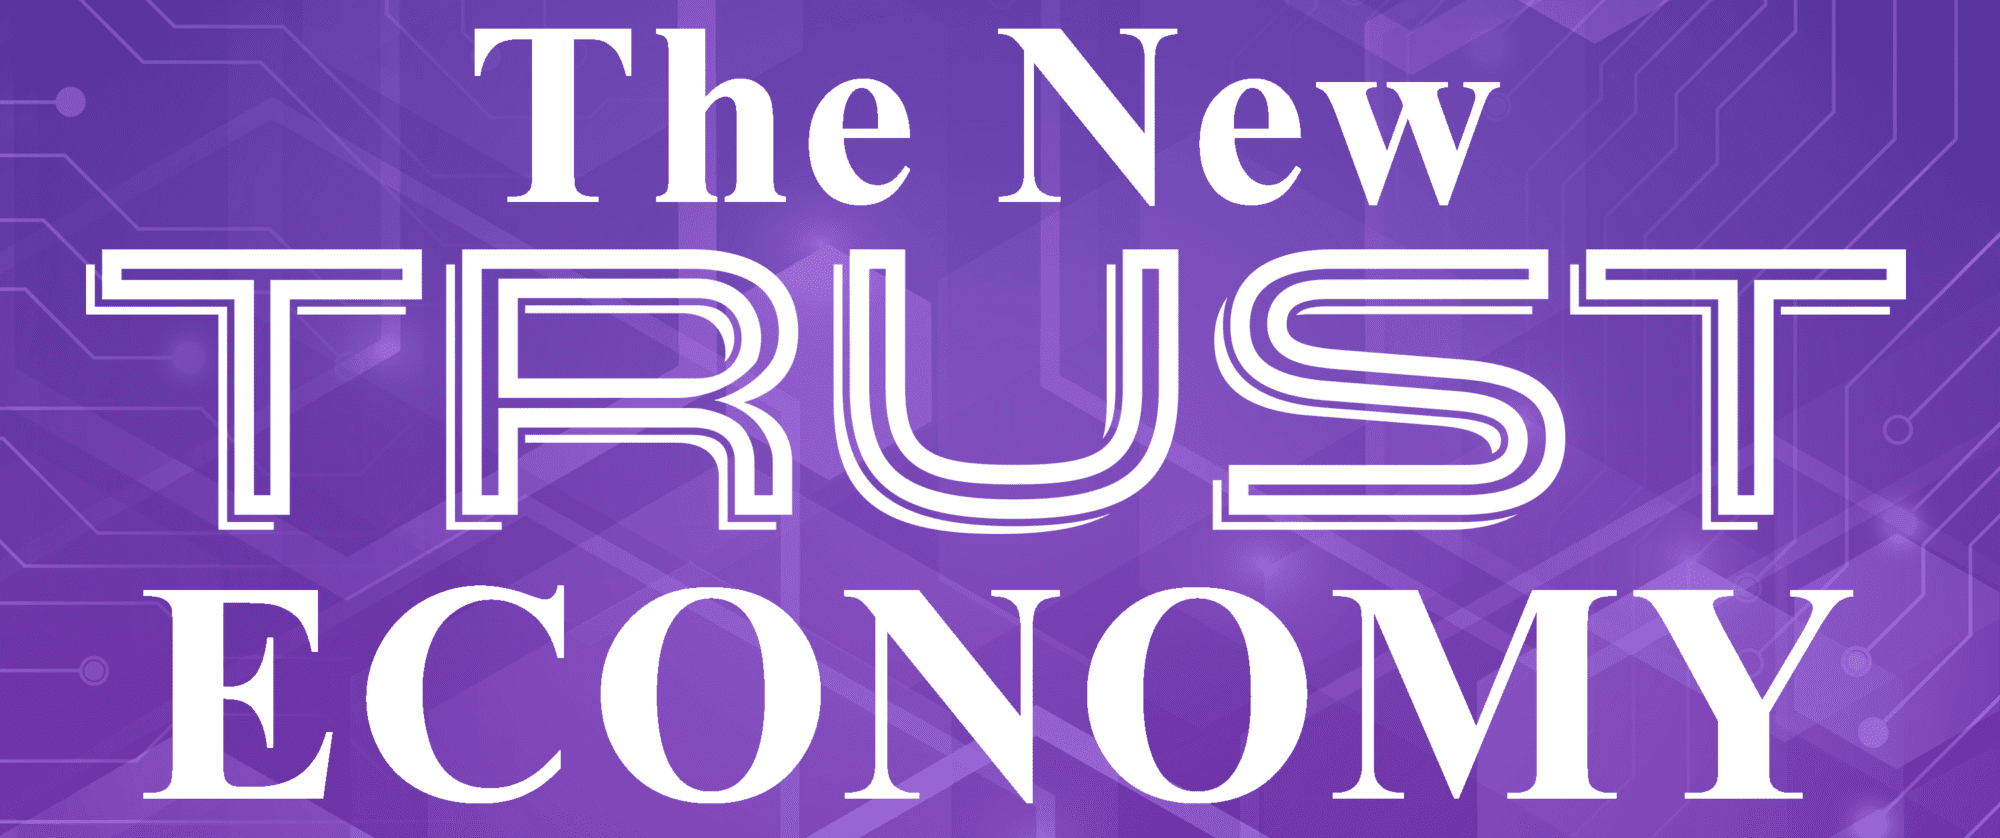 Logo for The New Trust Economy